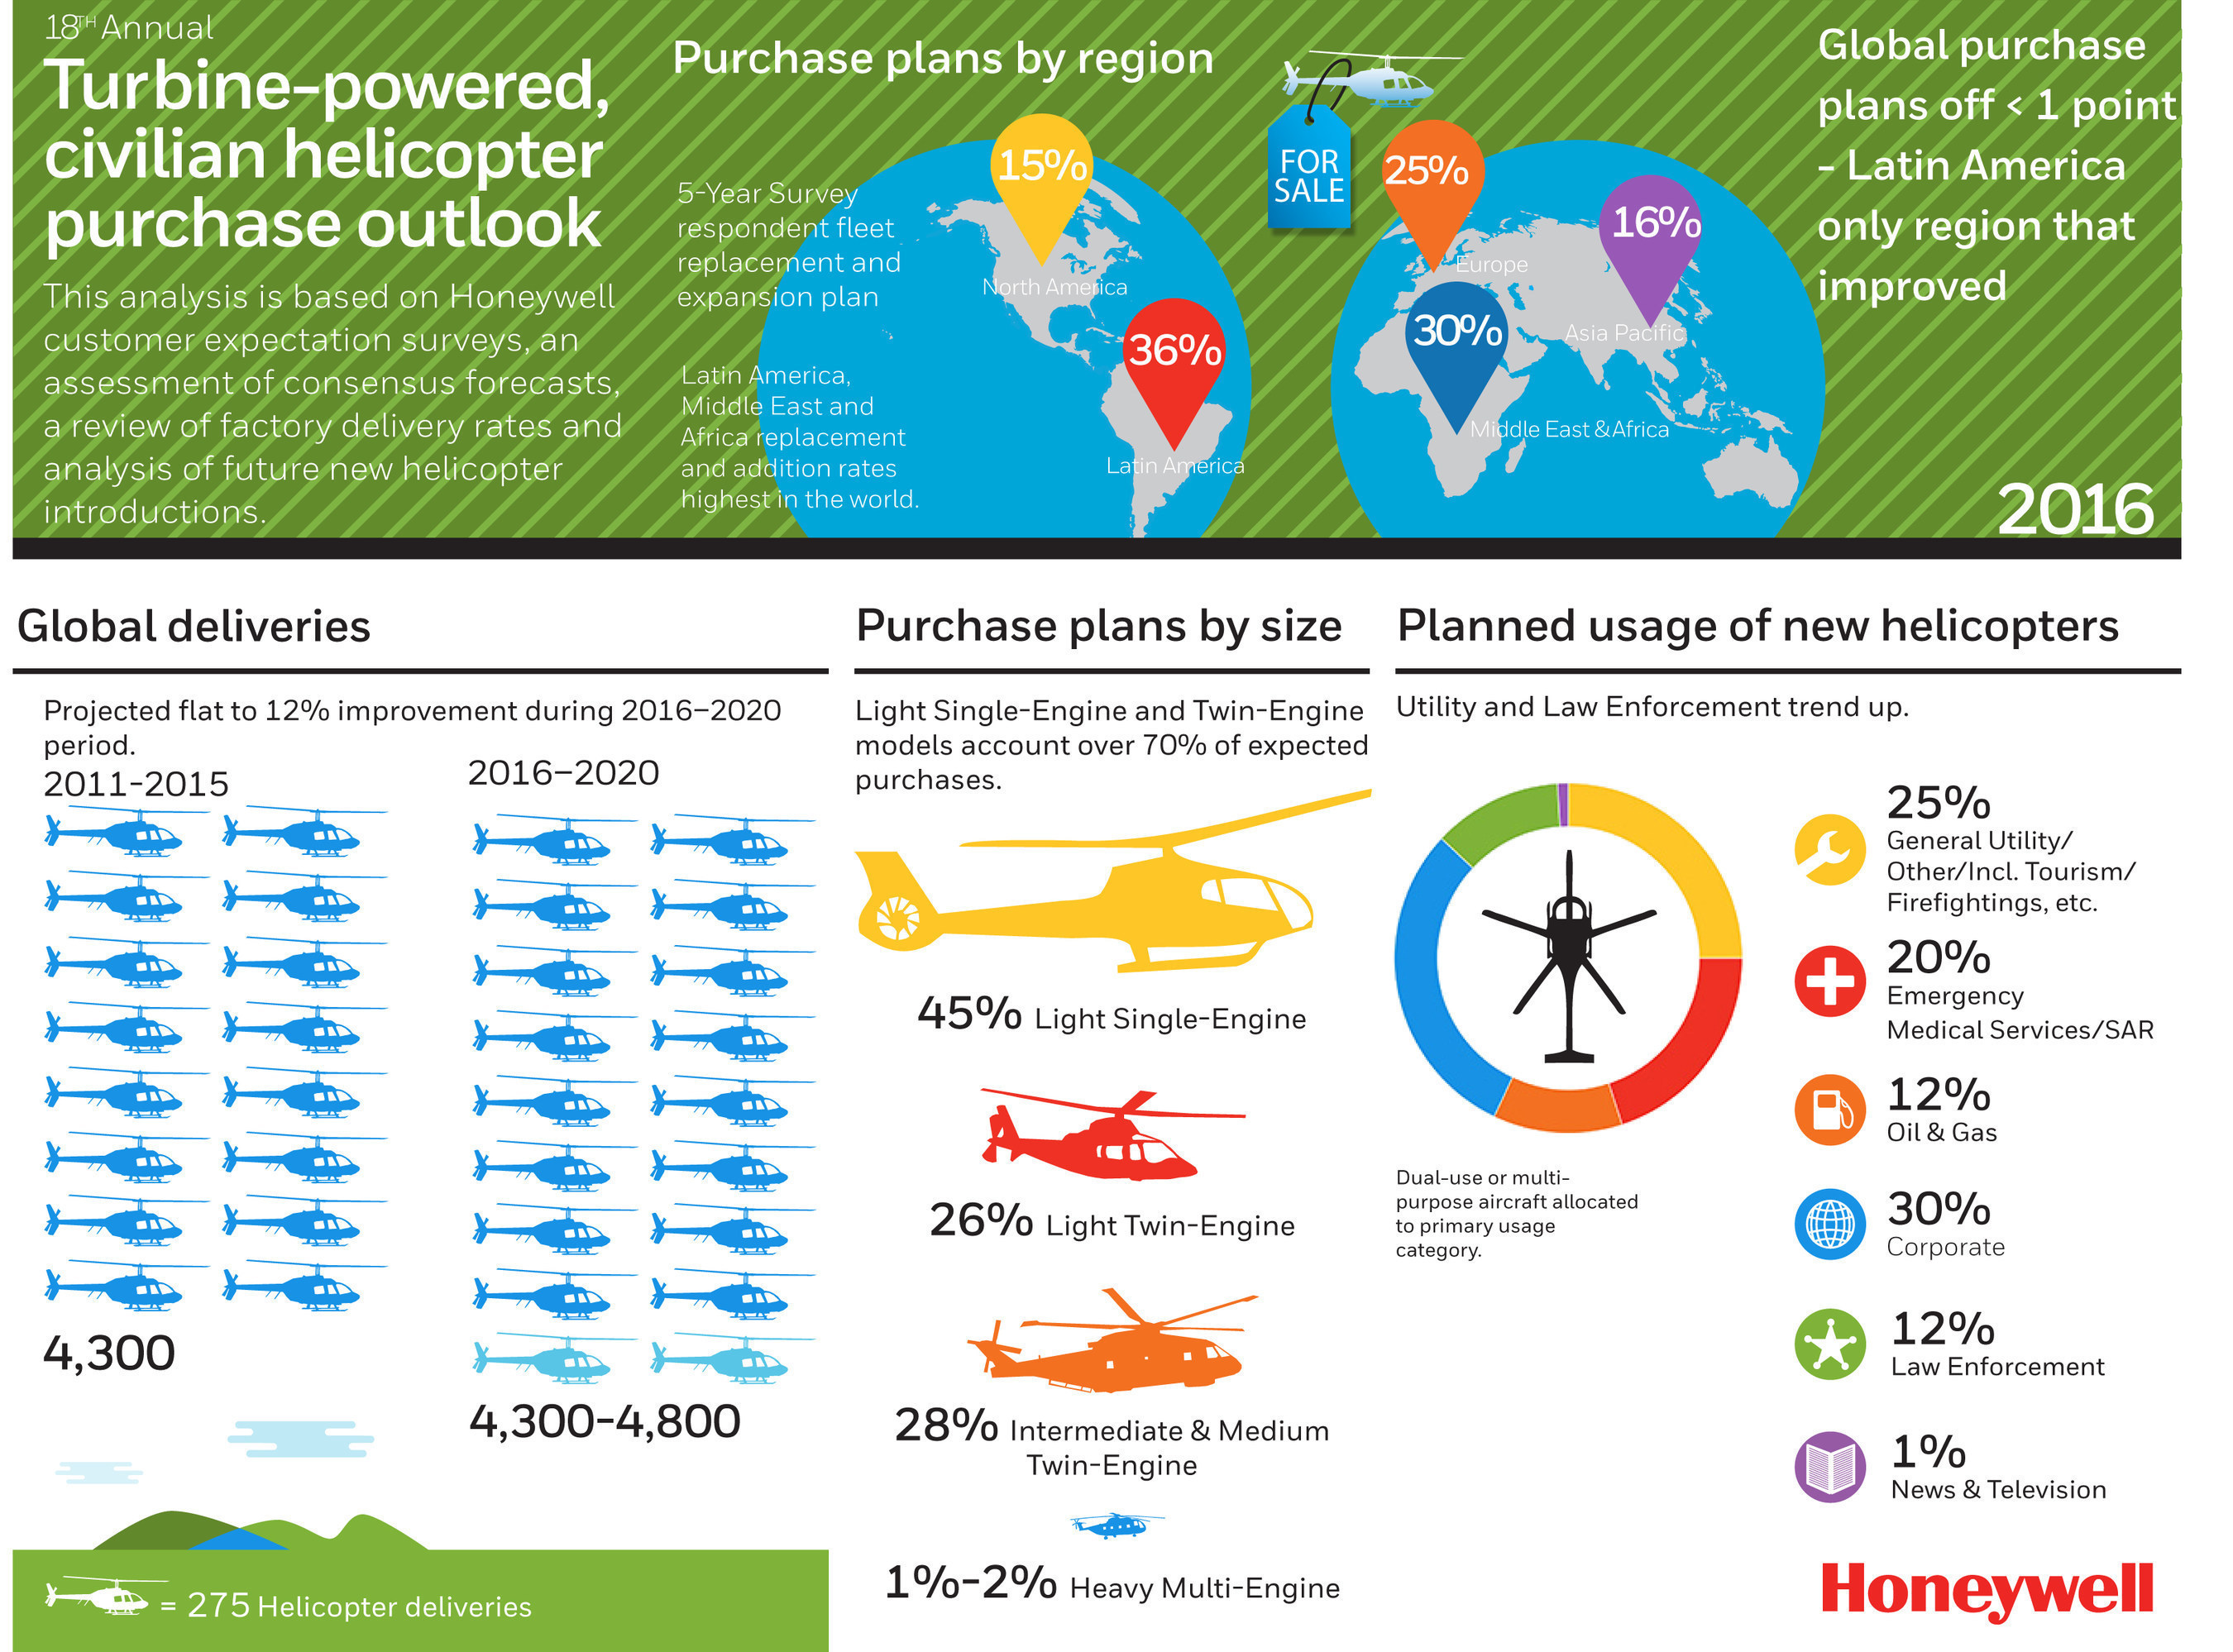 Honeywell Aerospace 18th Annual Helicopter Purchase Outlook Infographic